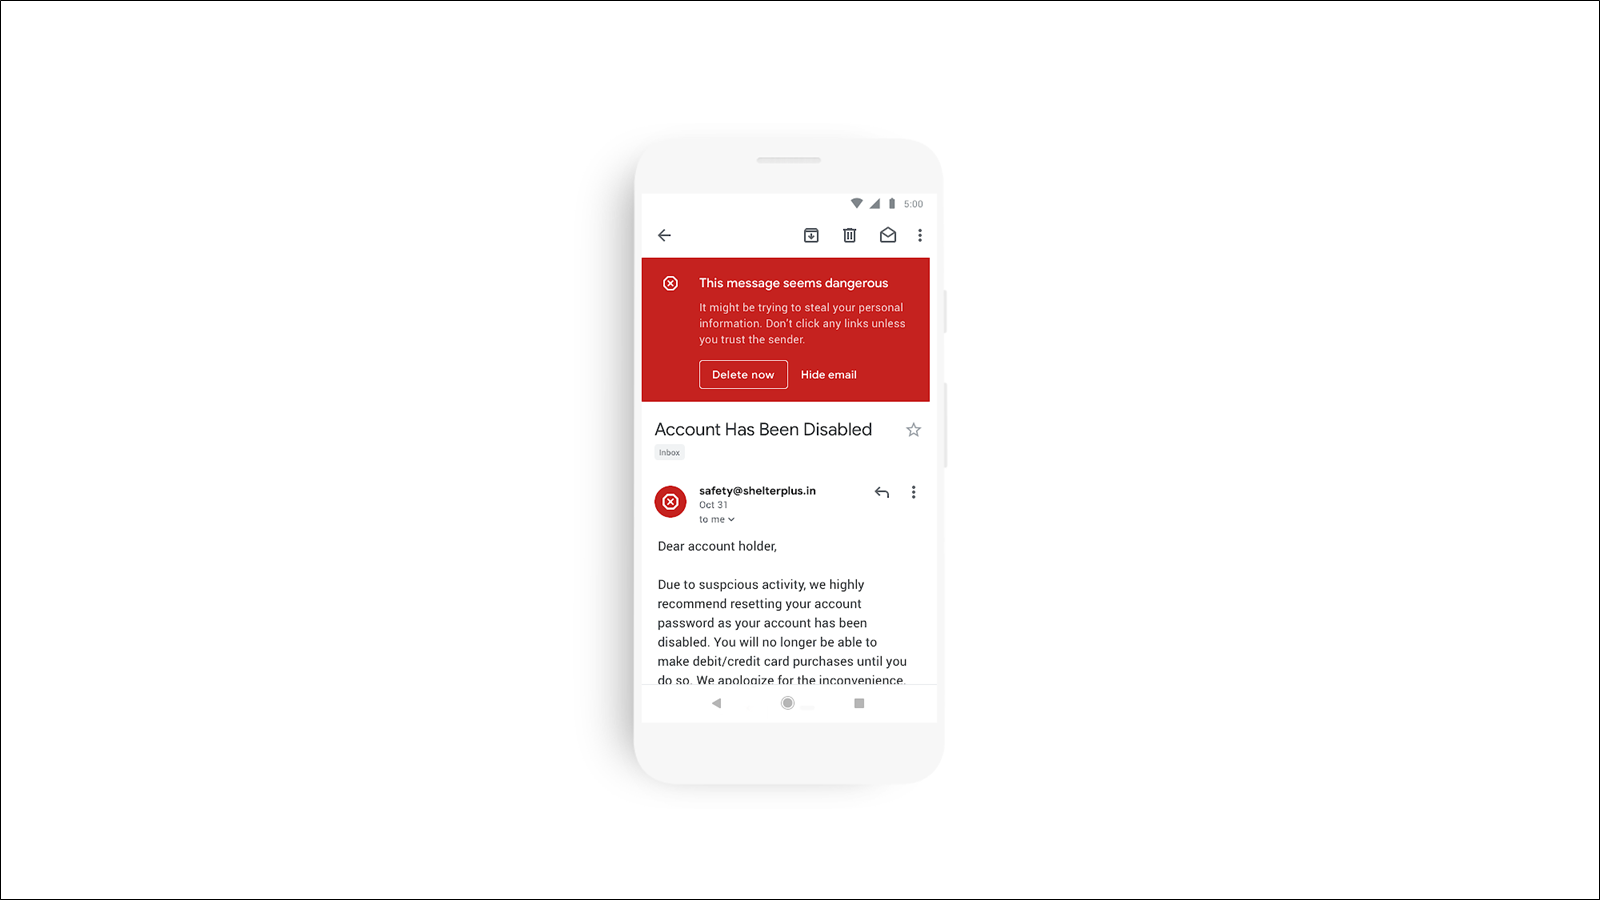 Gmail alerting of a phishing scam